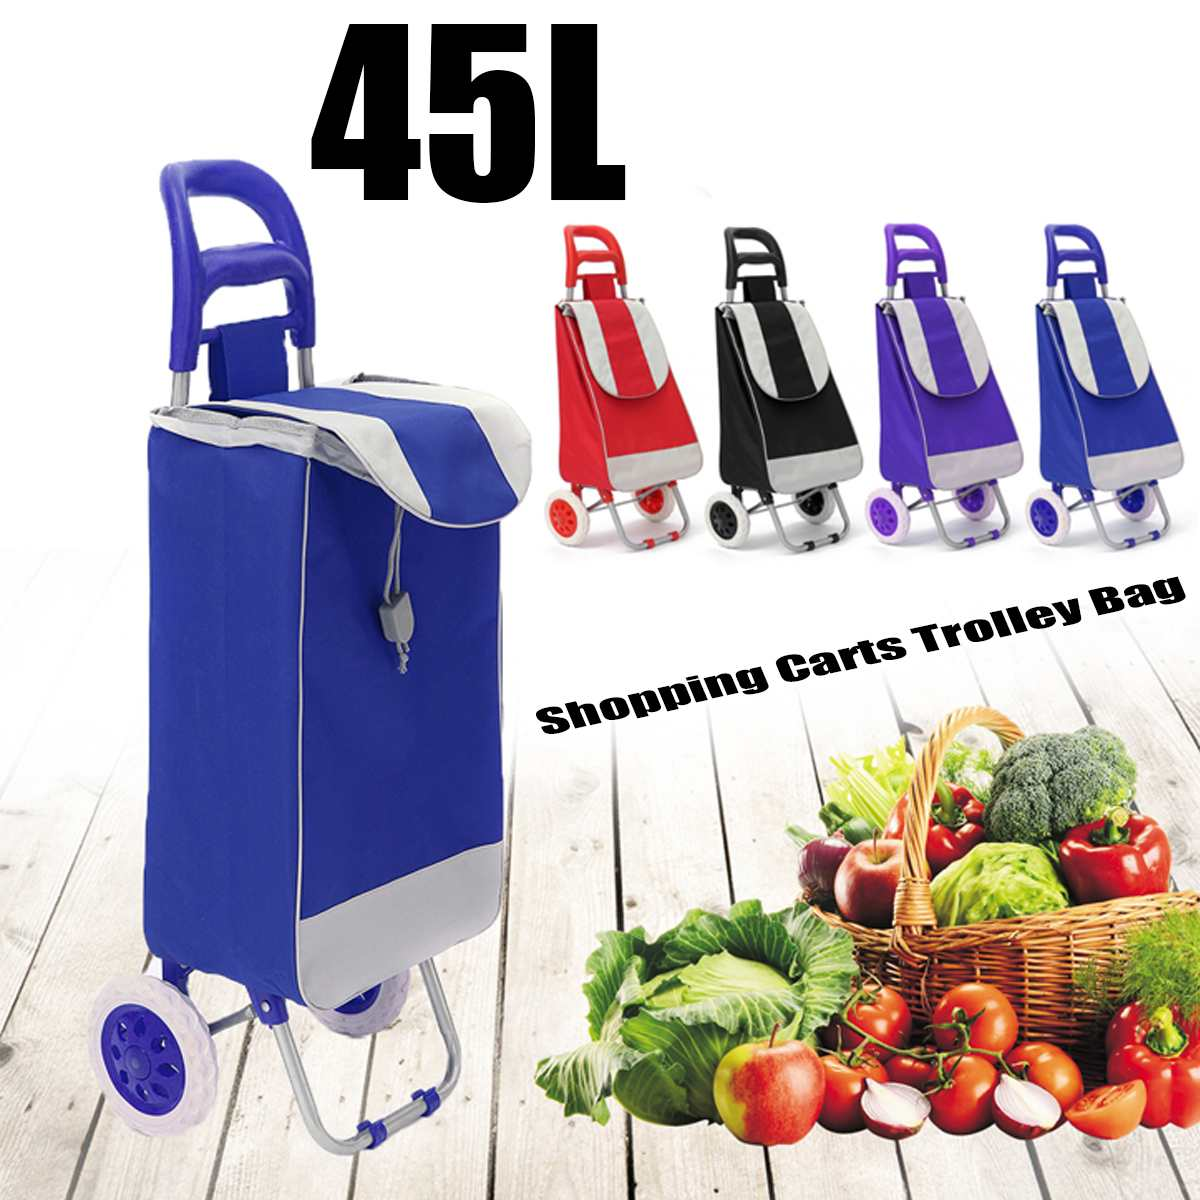 45L Foldable Shopping Trolley Bag On Wheels Push Tote Cart Carts Trolley Bag Basket Luggage Wheels Oxford Fabric Floding